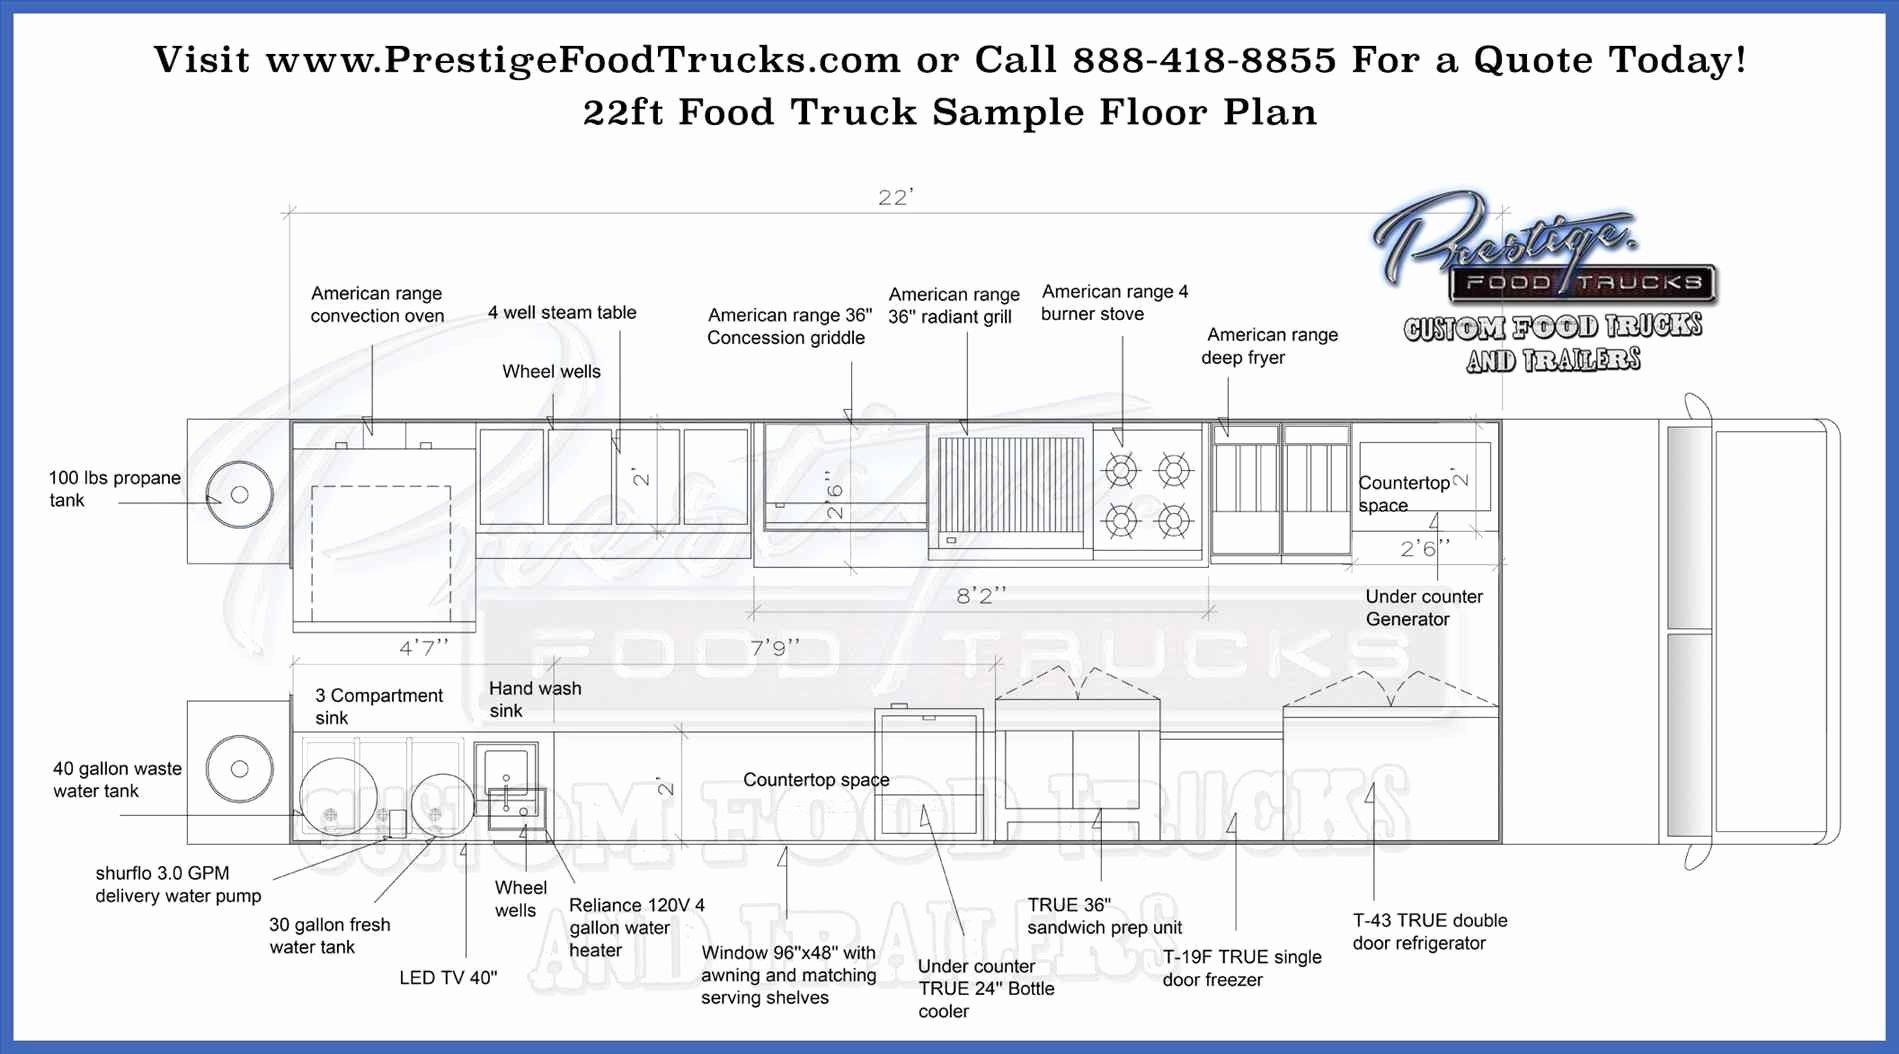 Food Truck Business Plan Template Beautiful Food Truck Business Plan Template Free Arch Dsgn